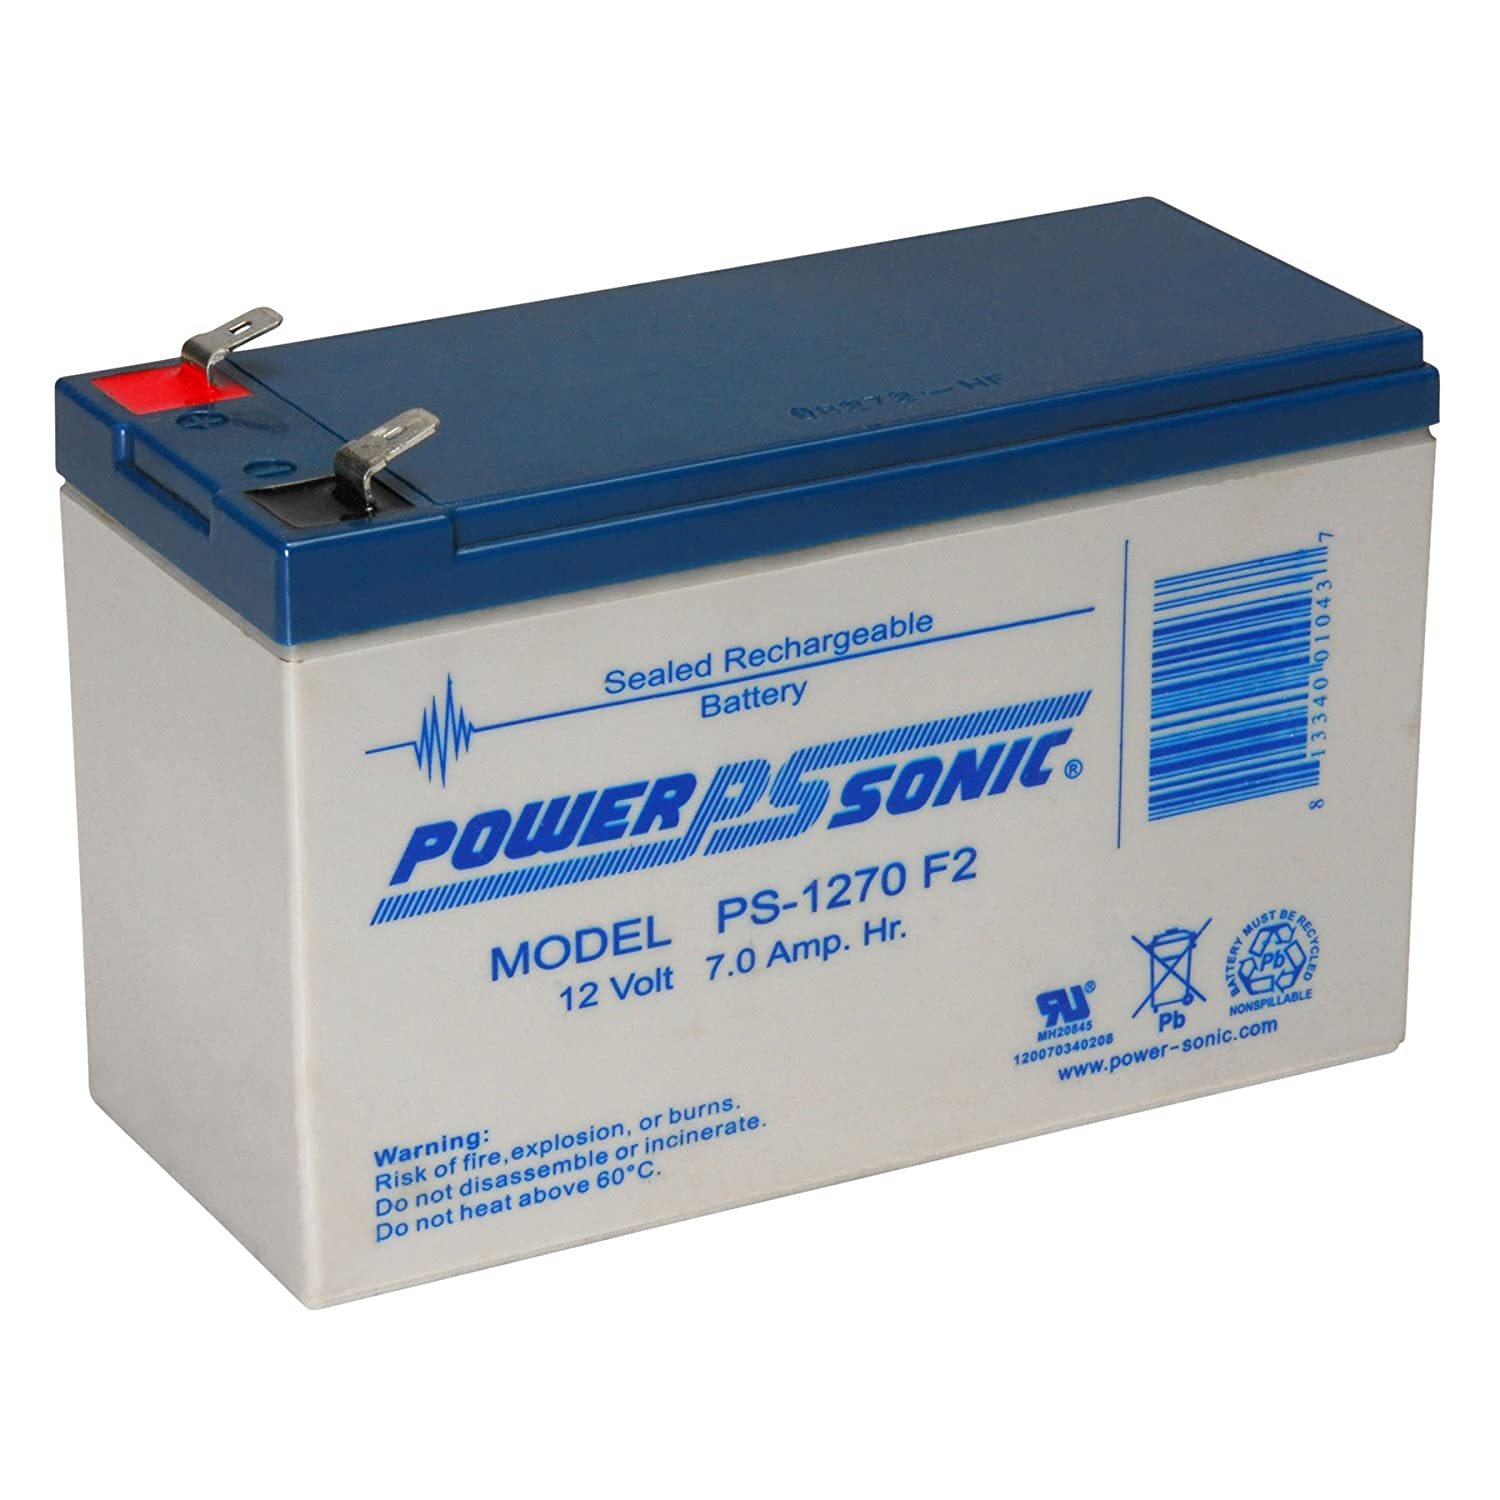 PS-1270 F2 - Power-Sonic 12V / 7Ah Sealed Lead Acid Battery with F2 Terminals (SHIPS FROM CANADA) PS-1270-F2